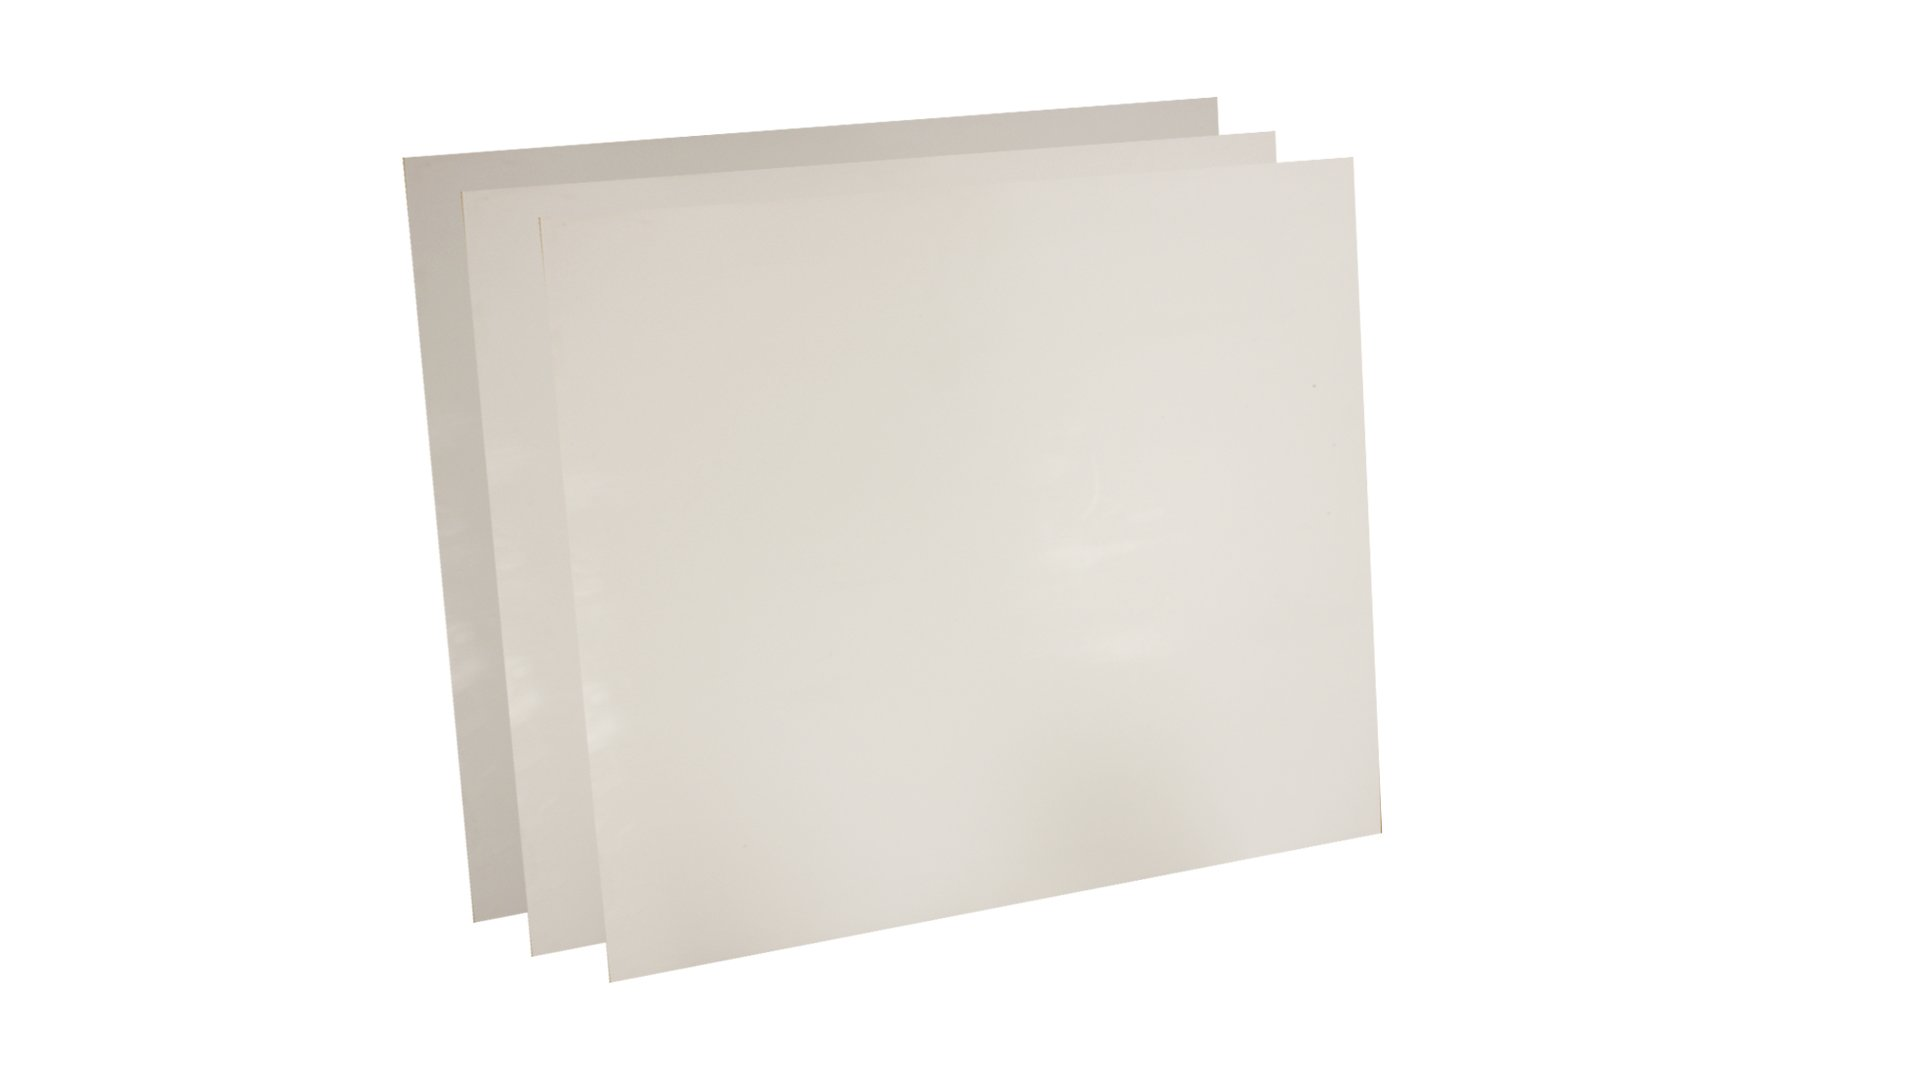 Sterling Seal 7530.5012x12x3 7530 Virgin Teflon Sheet, 1/2'' Thick, 12'' x 12'' (Pack of 3)